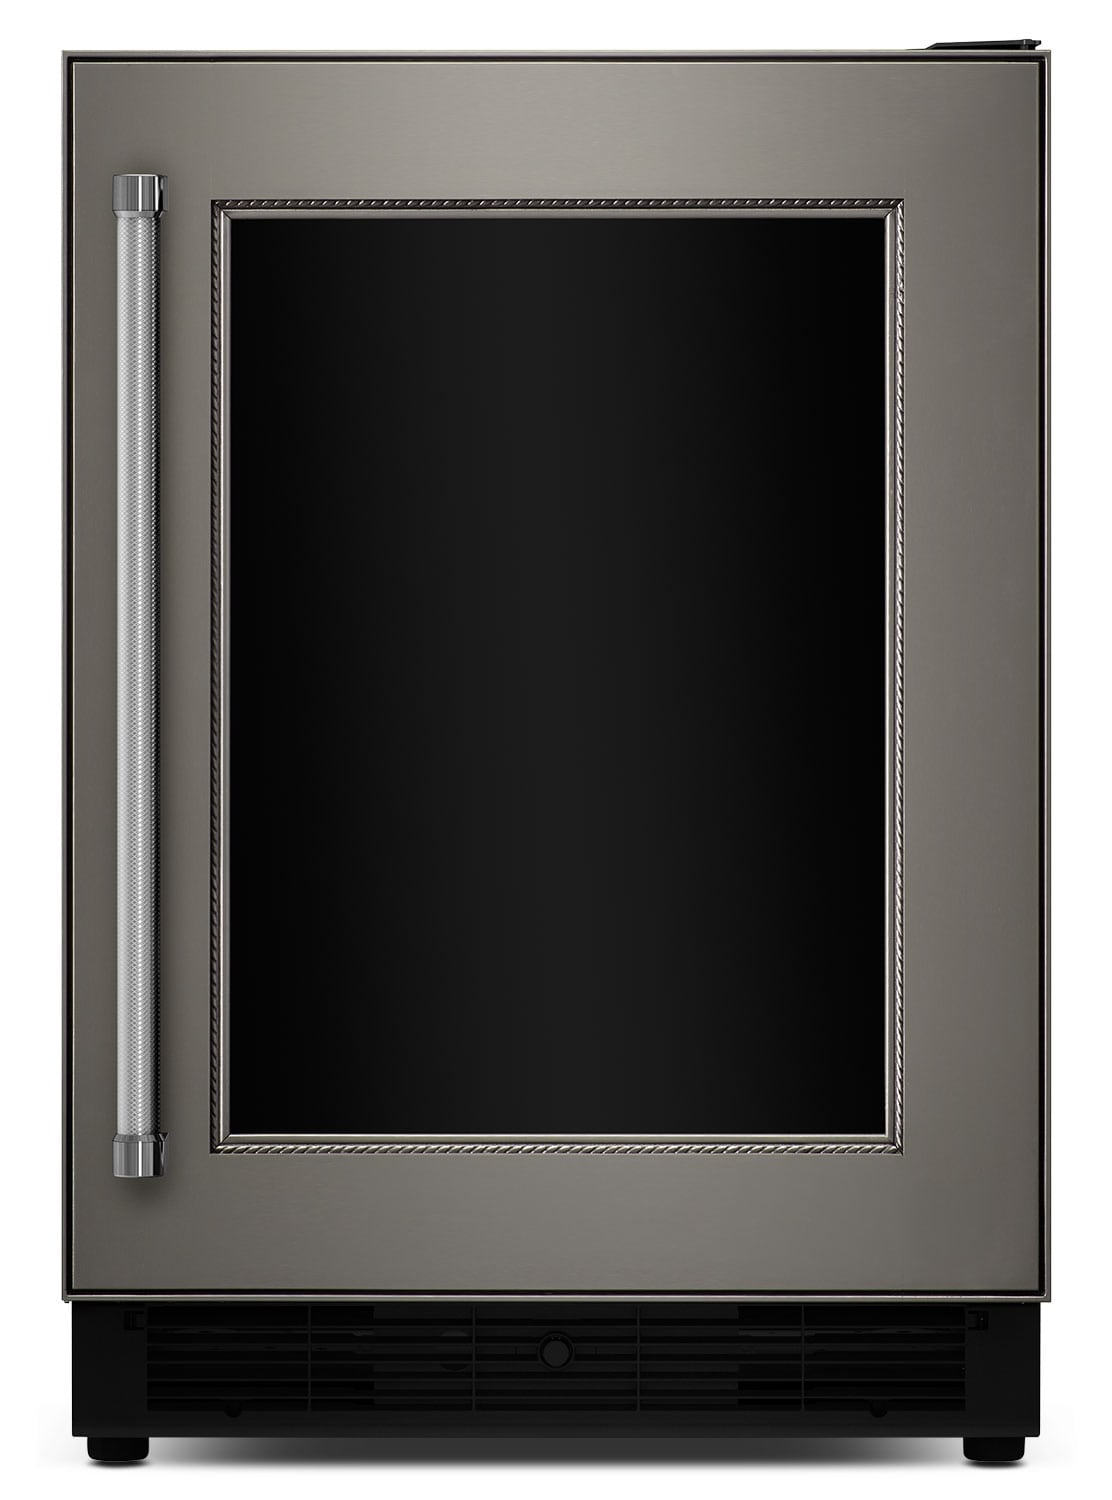 Refrigerators and Freezers - KitchenAid Custom Panel-Ready Beverage Centre KUBR204EPA